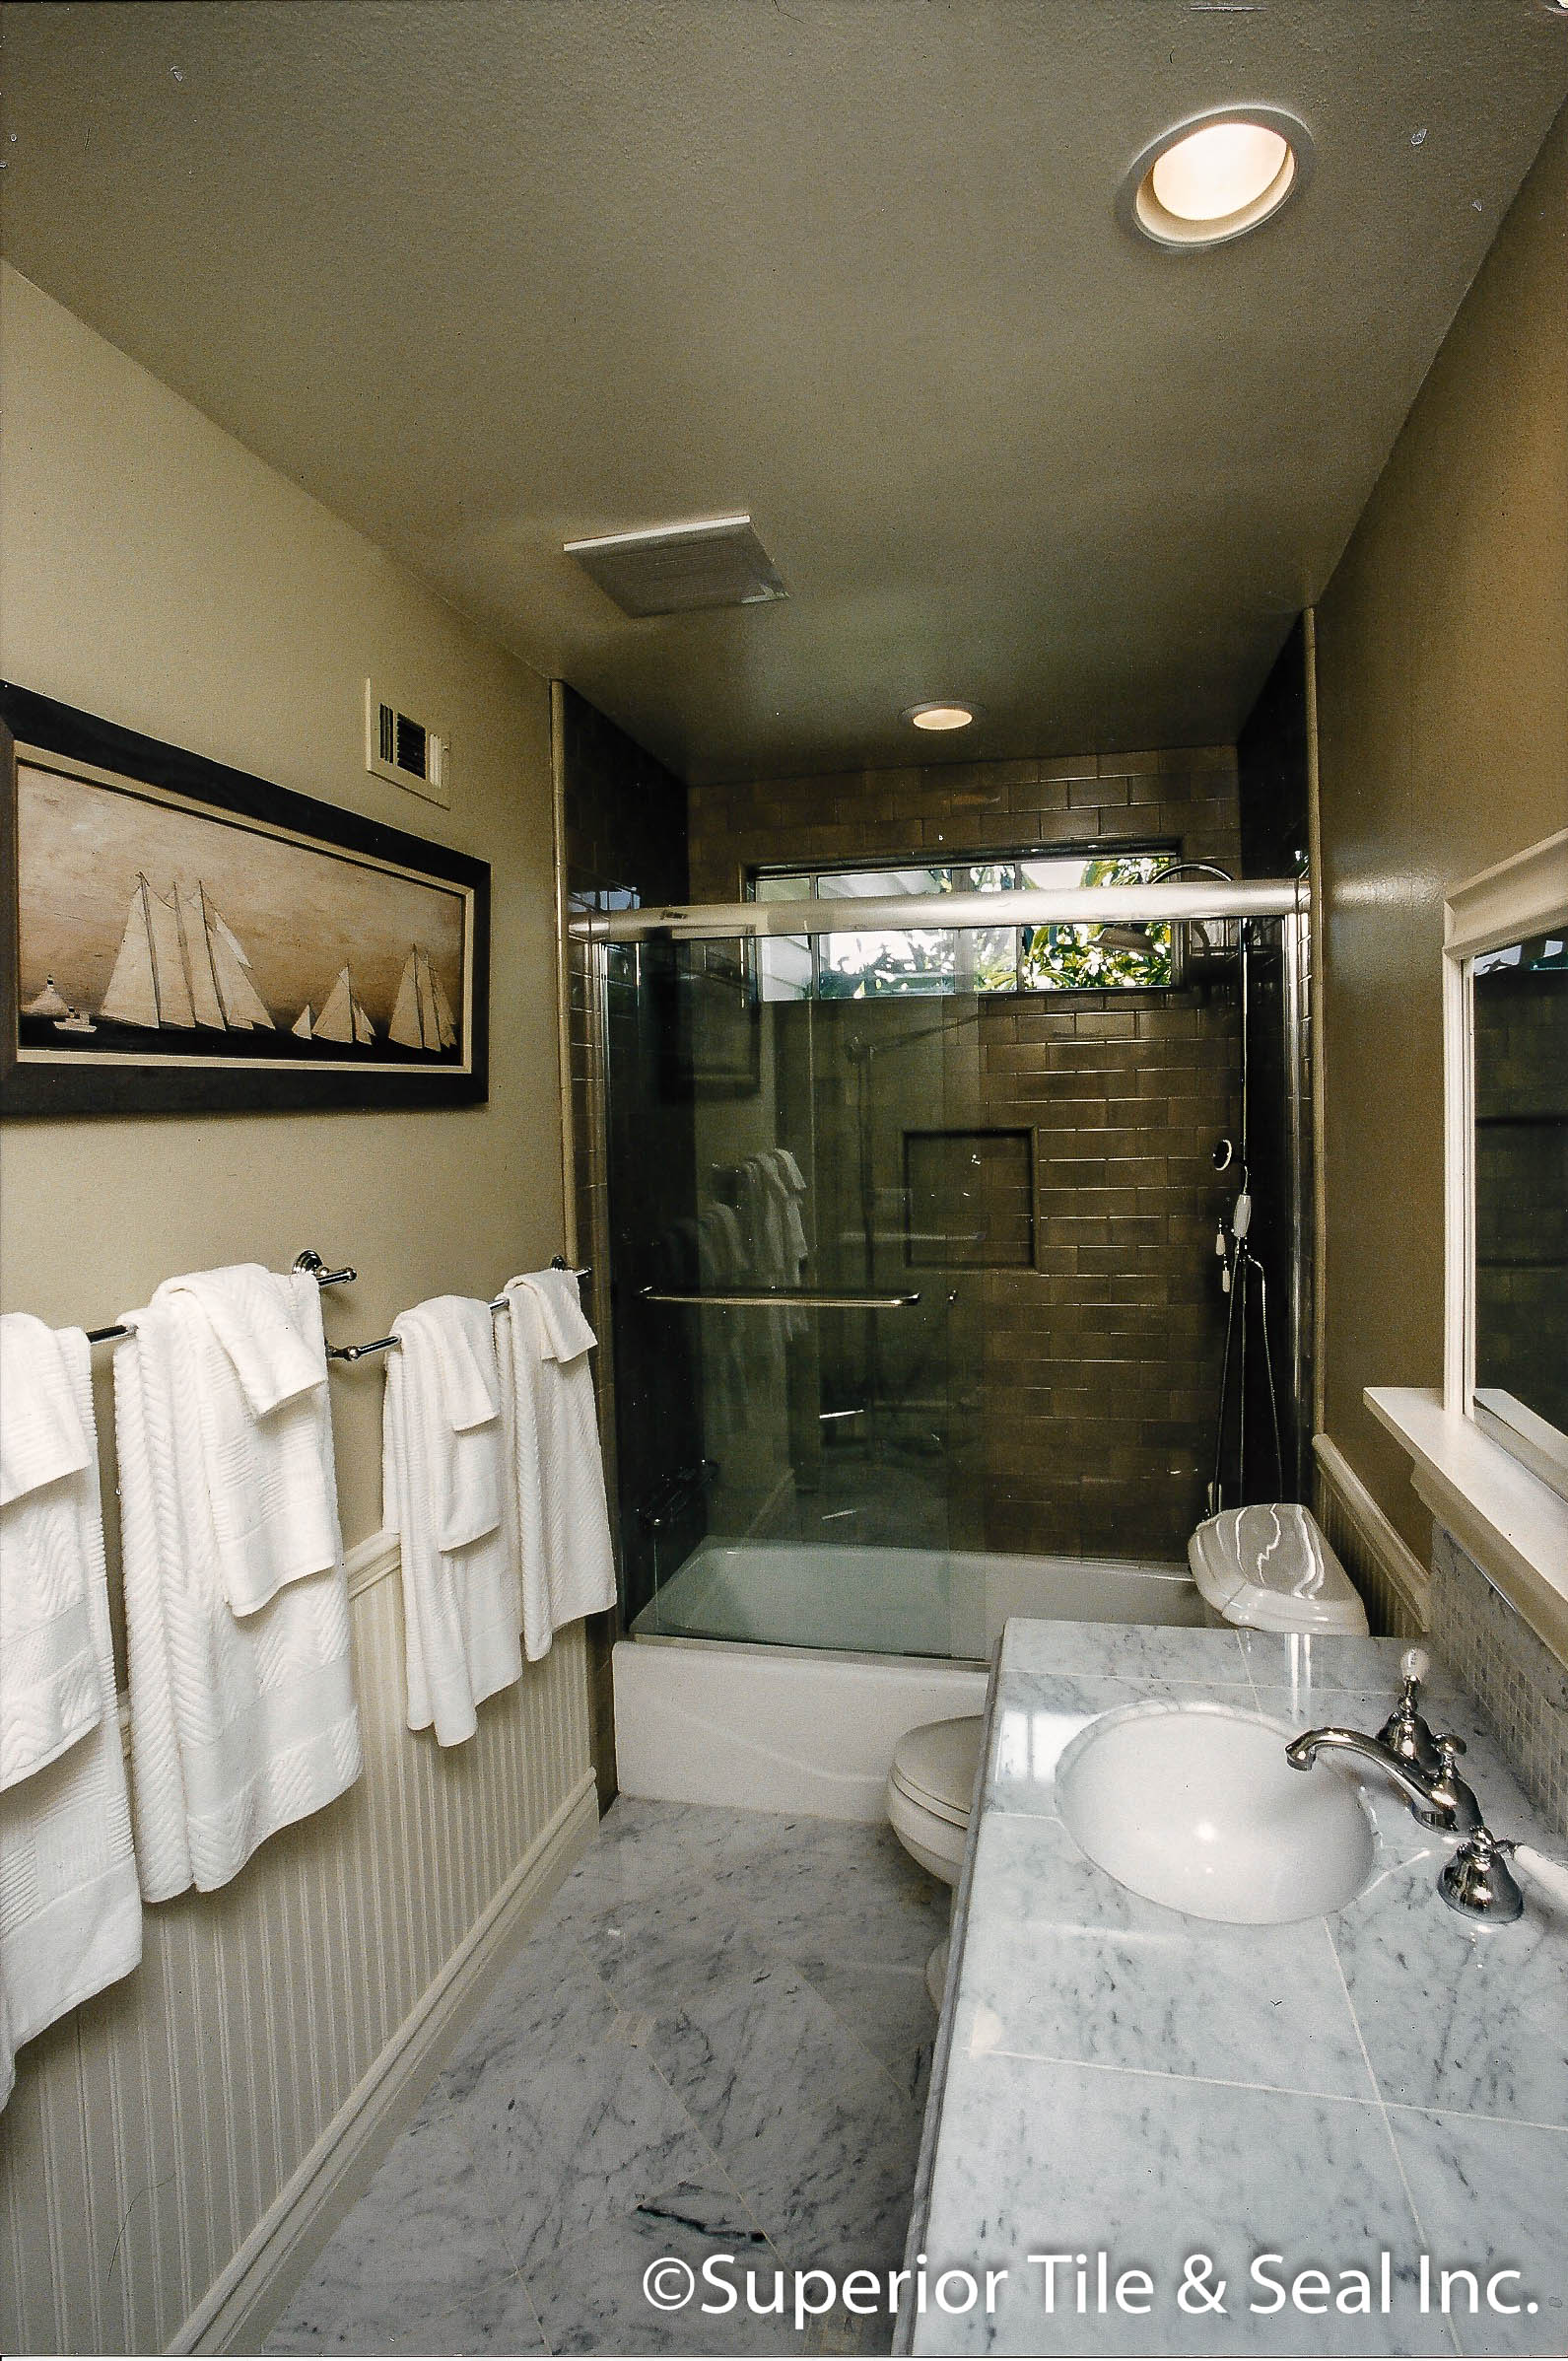 Limnestone Counter Top And Floor With Ceramic Tile Tub Shower 1